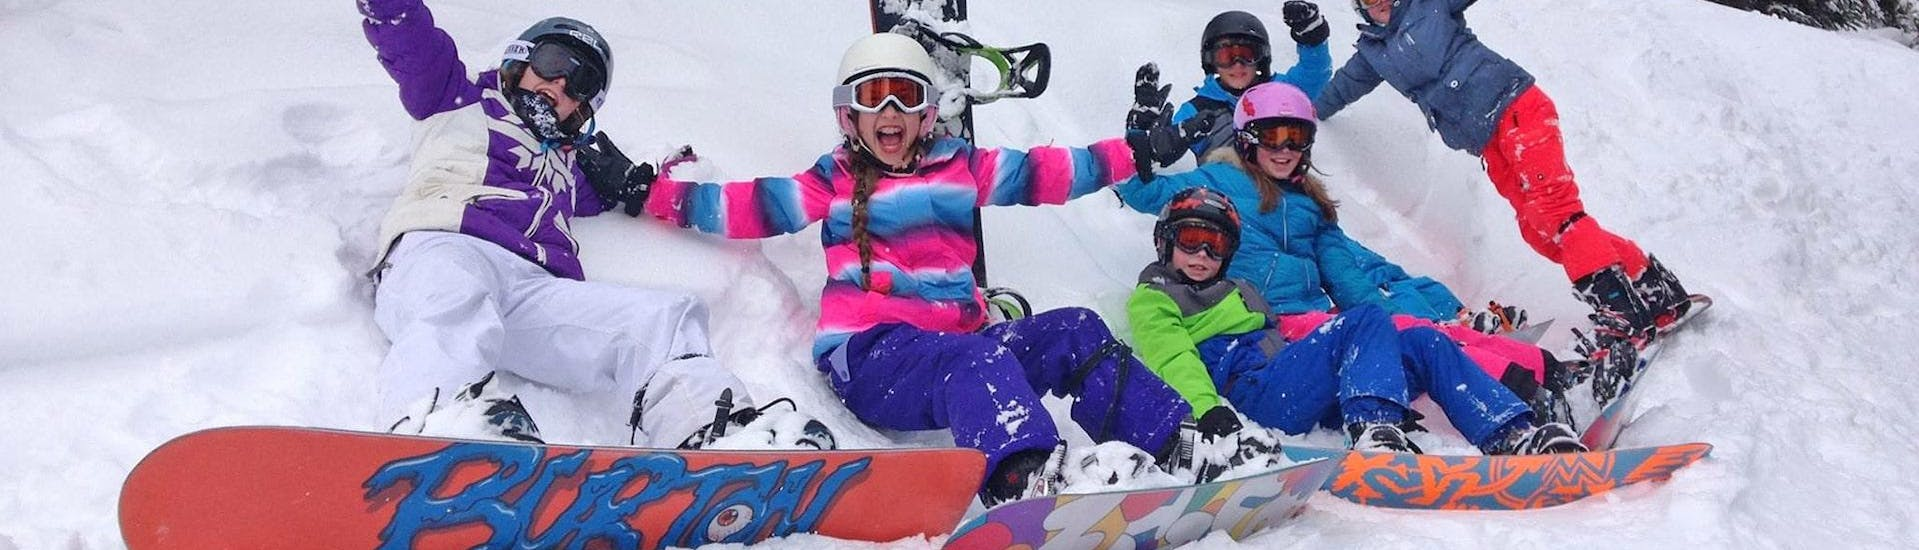 "A group of children enjoying themselves during their Snowboarding Lessons ""Young Boarder Zone"" (7-14 years) with BOARD.AT."